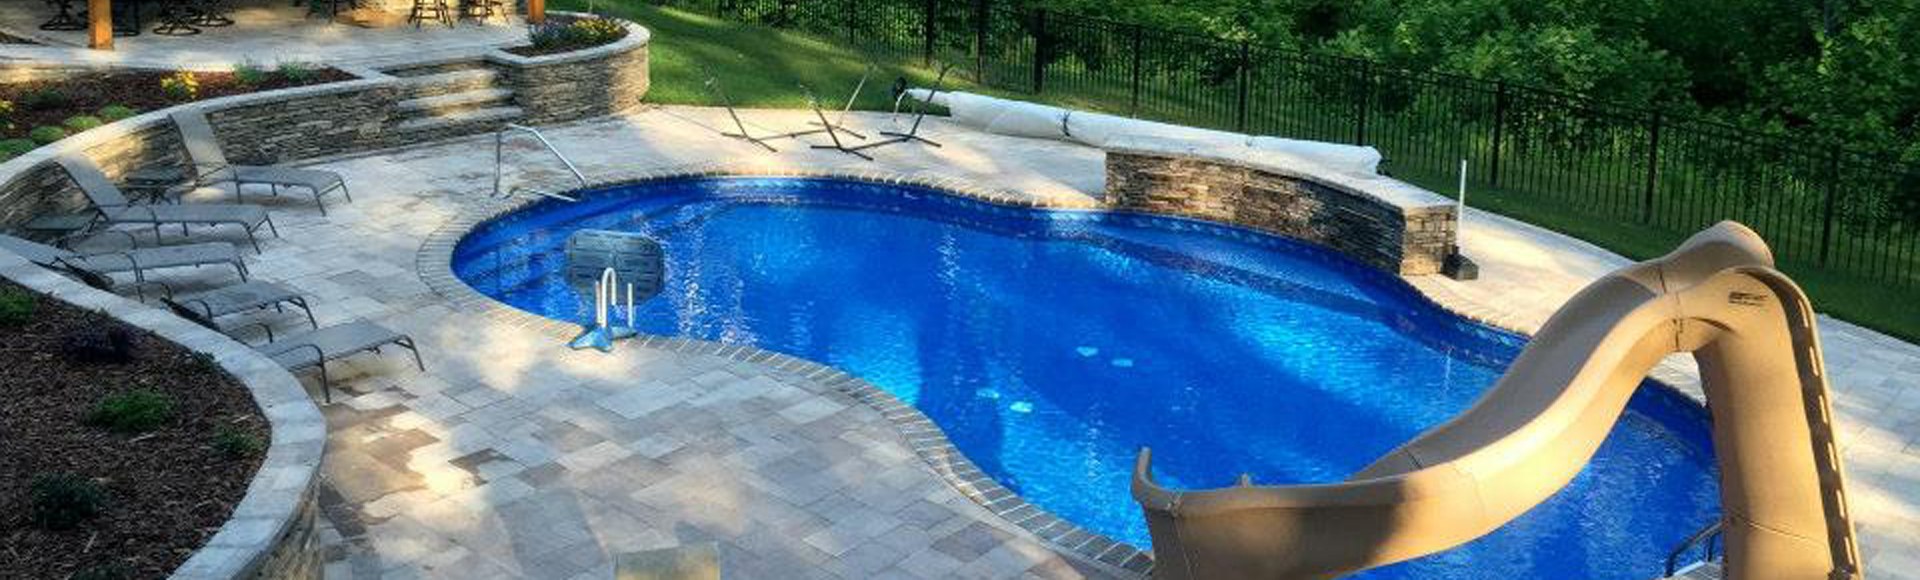 Inground custom pool design with slide